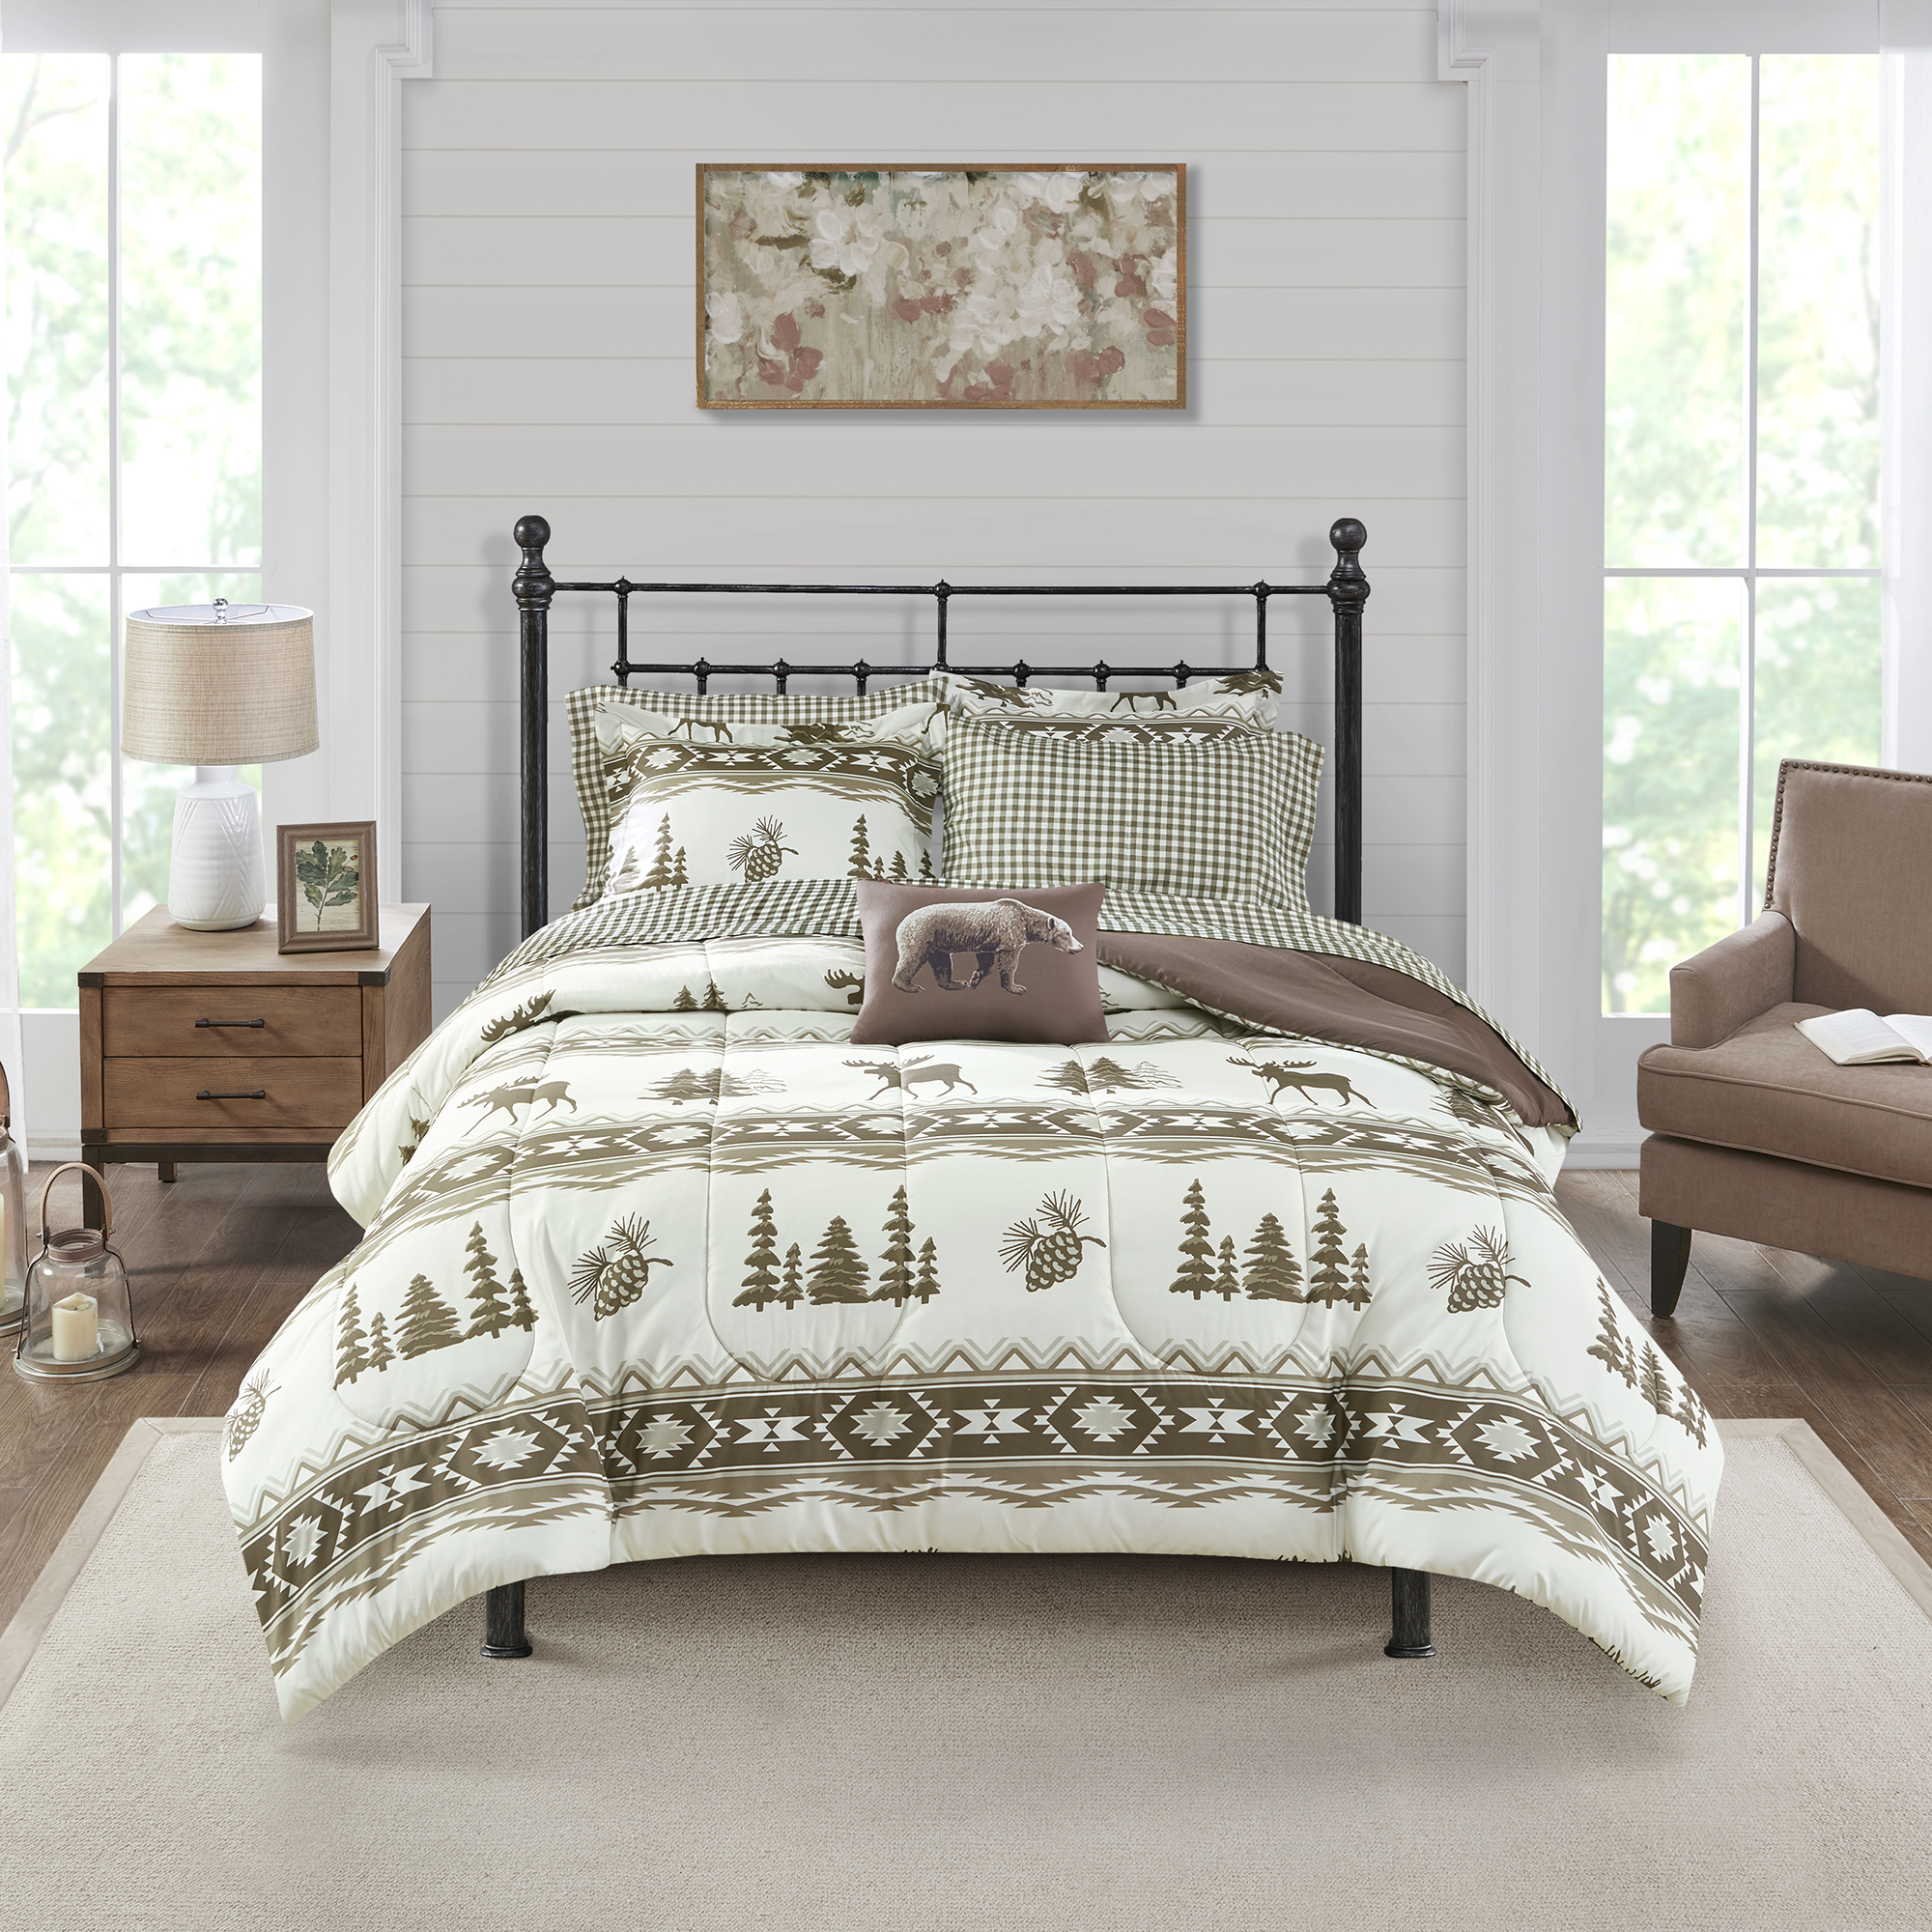 Mainstays Lodge Moose Printed Stripe 9 Piece Bed in a Bag Bedding